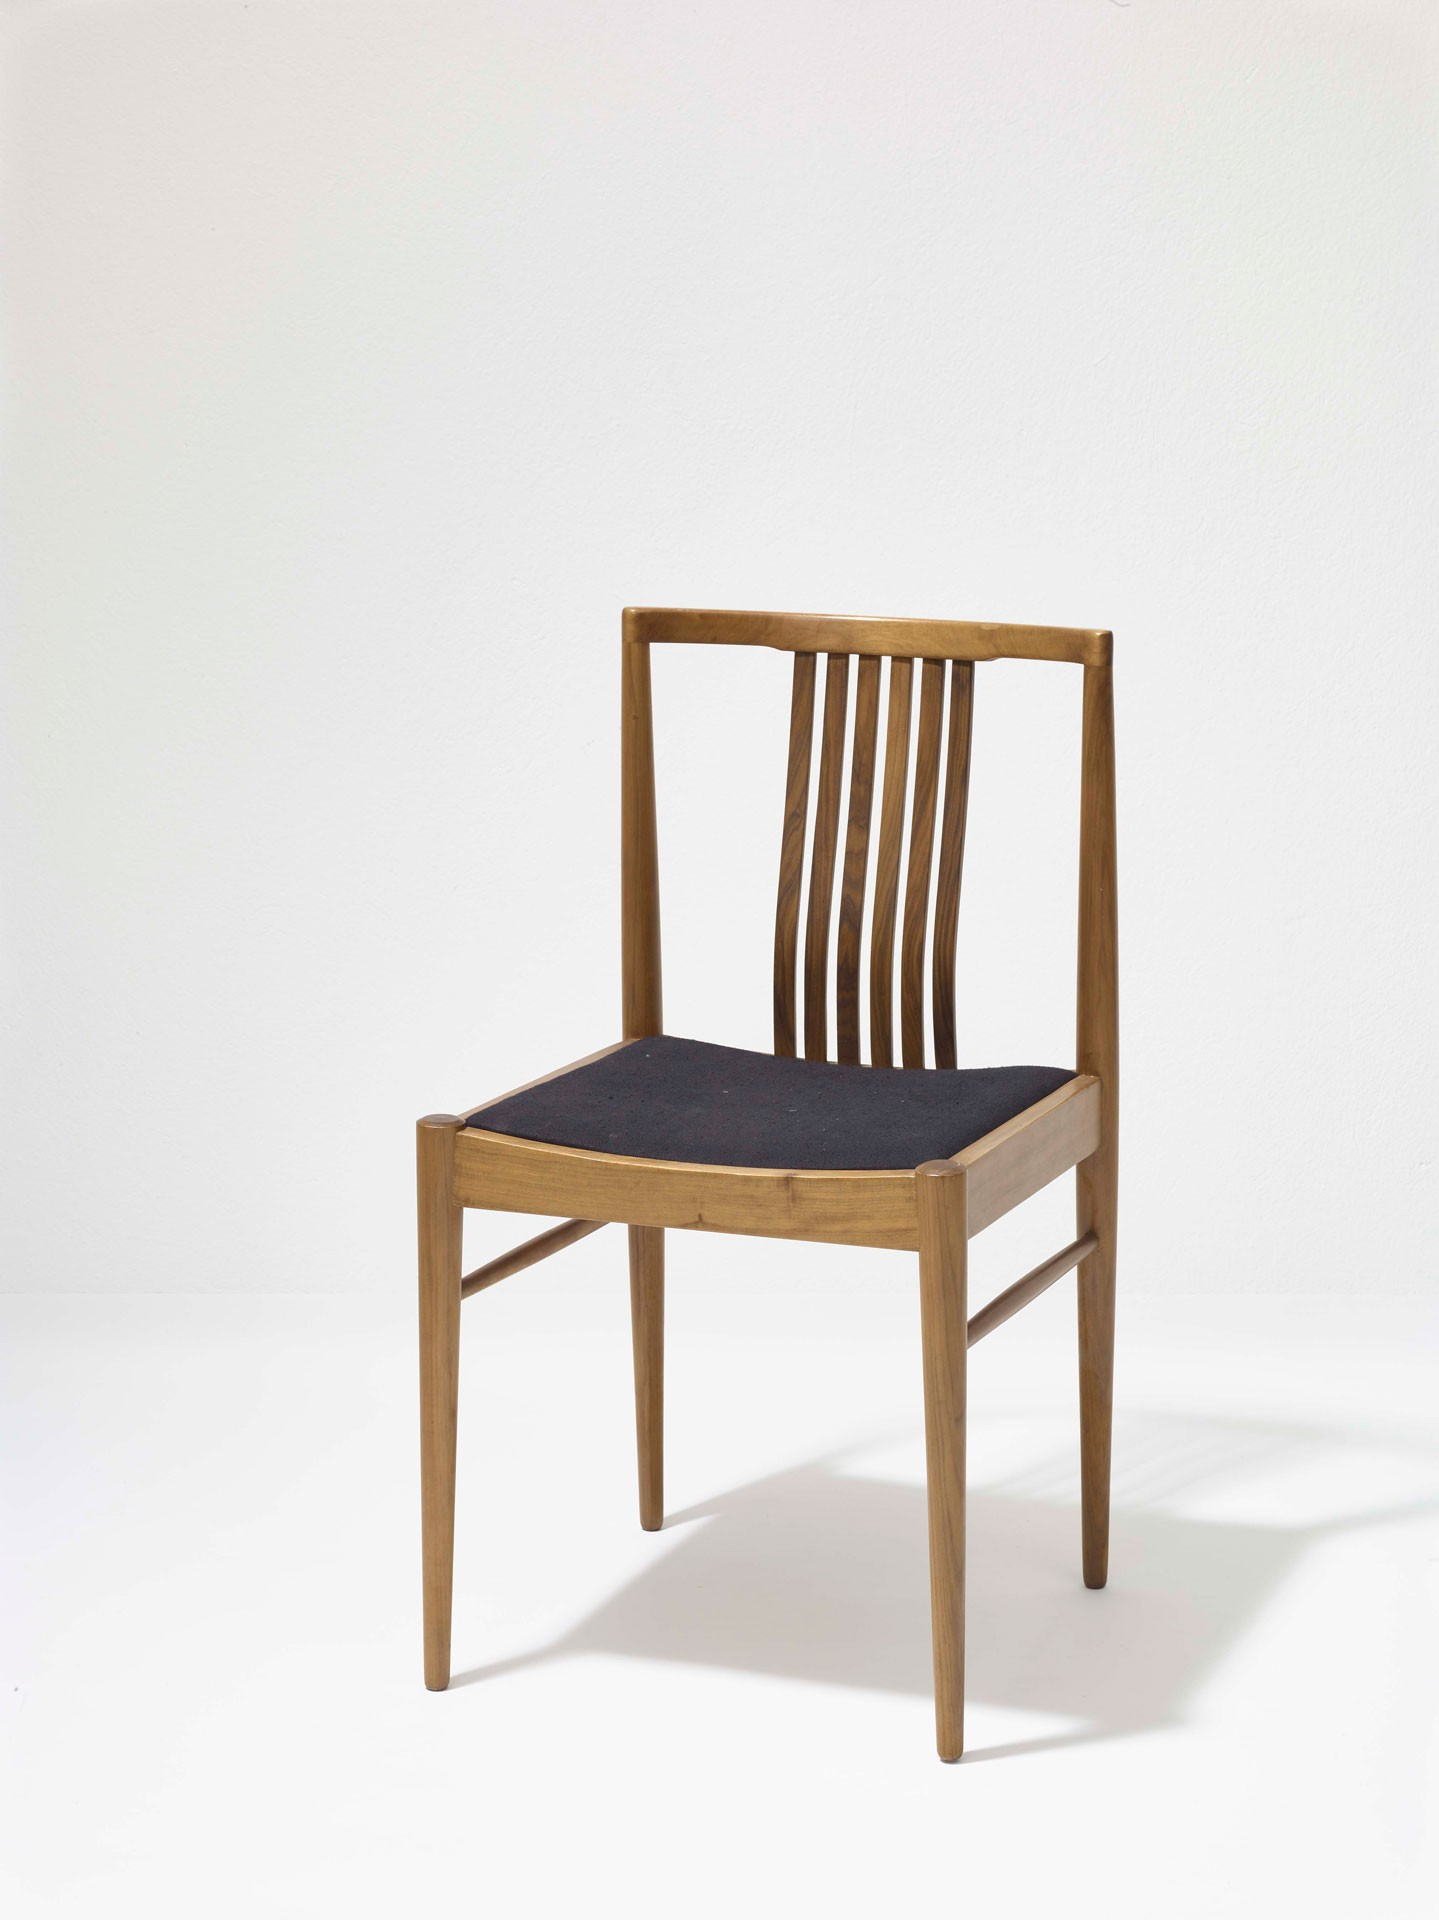 <BODY>Wolfgang J. Haipl, Chair, Vienna, 1963<br />Walnut wood, solid, partially laminated and bent; leather<br />© MAK/Georg Mayer</BODY>